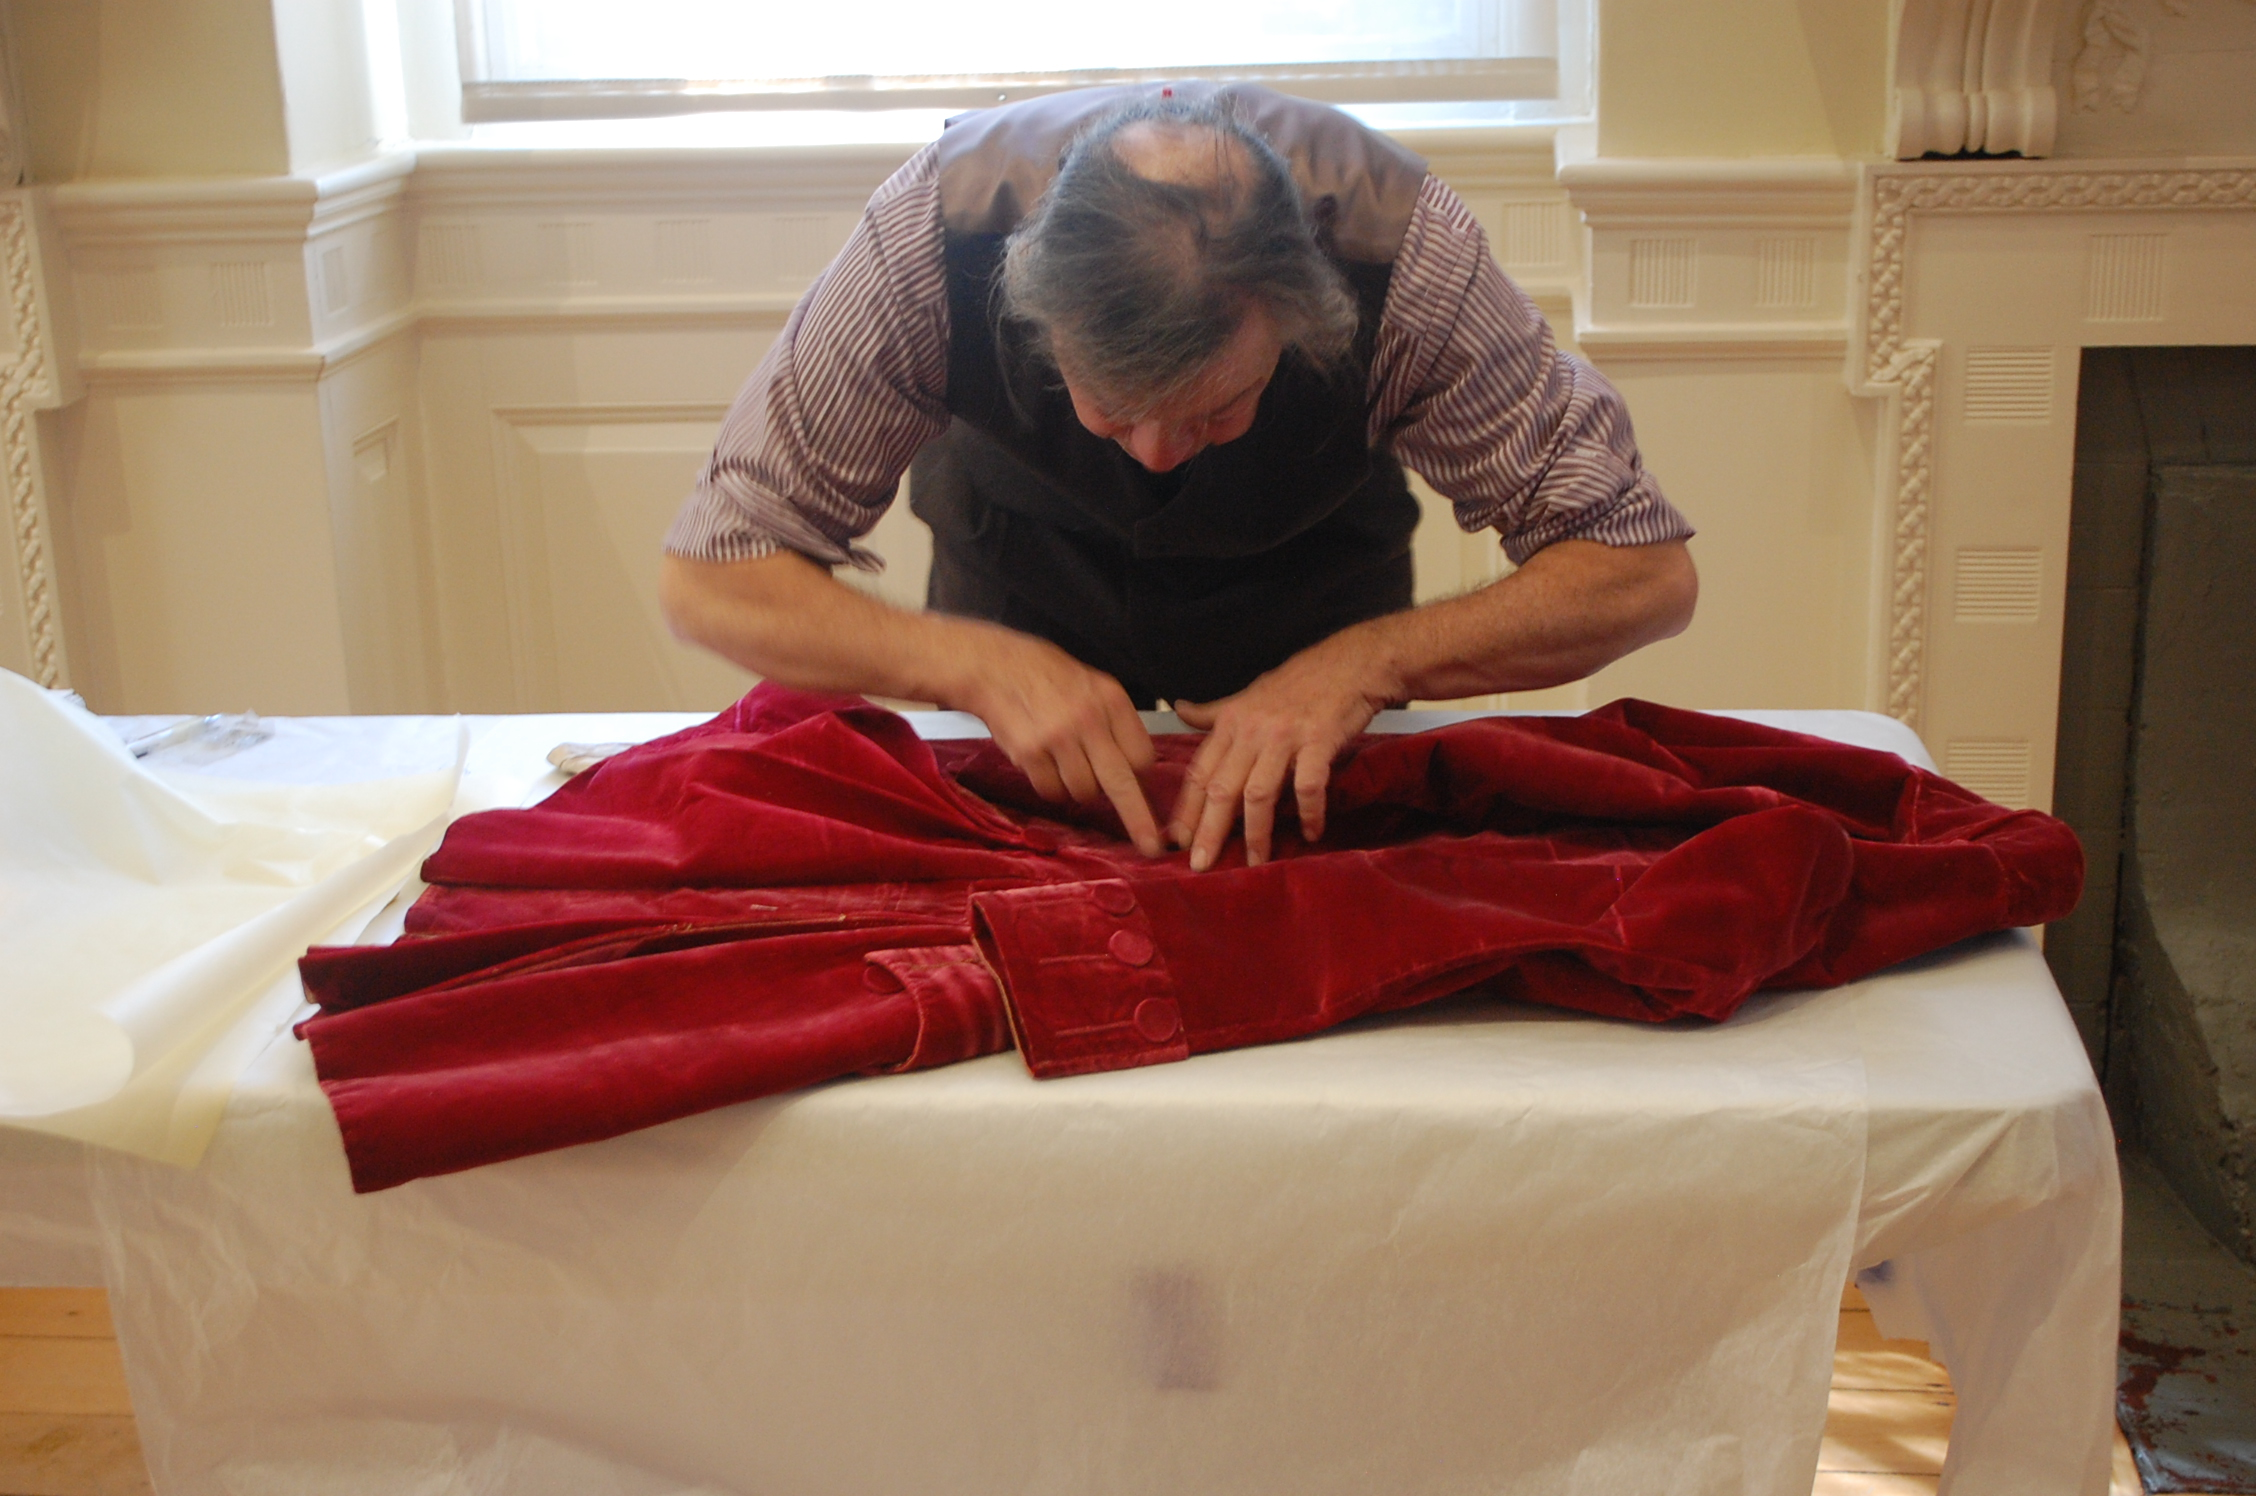 He began by thoroughly examining the coat.